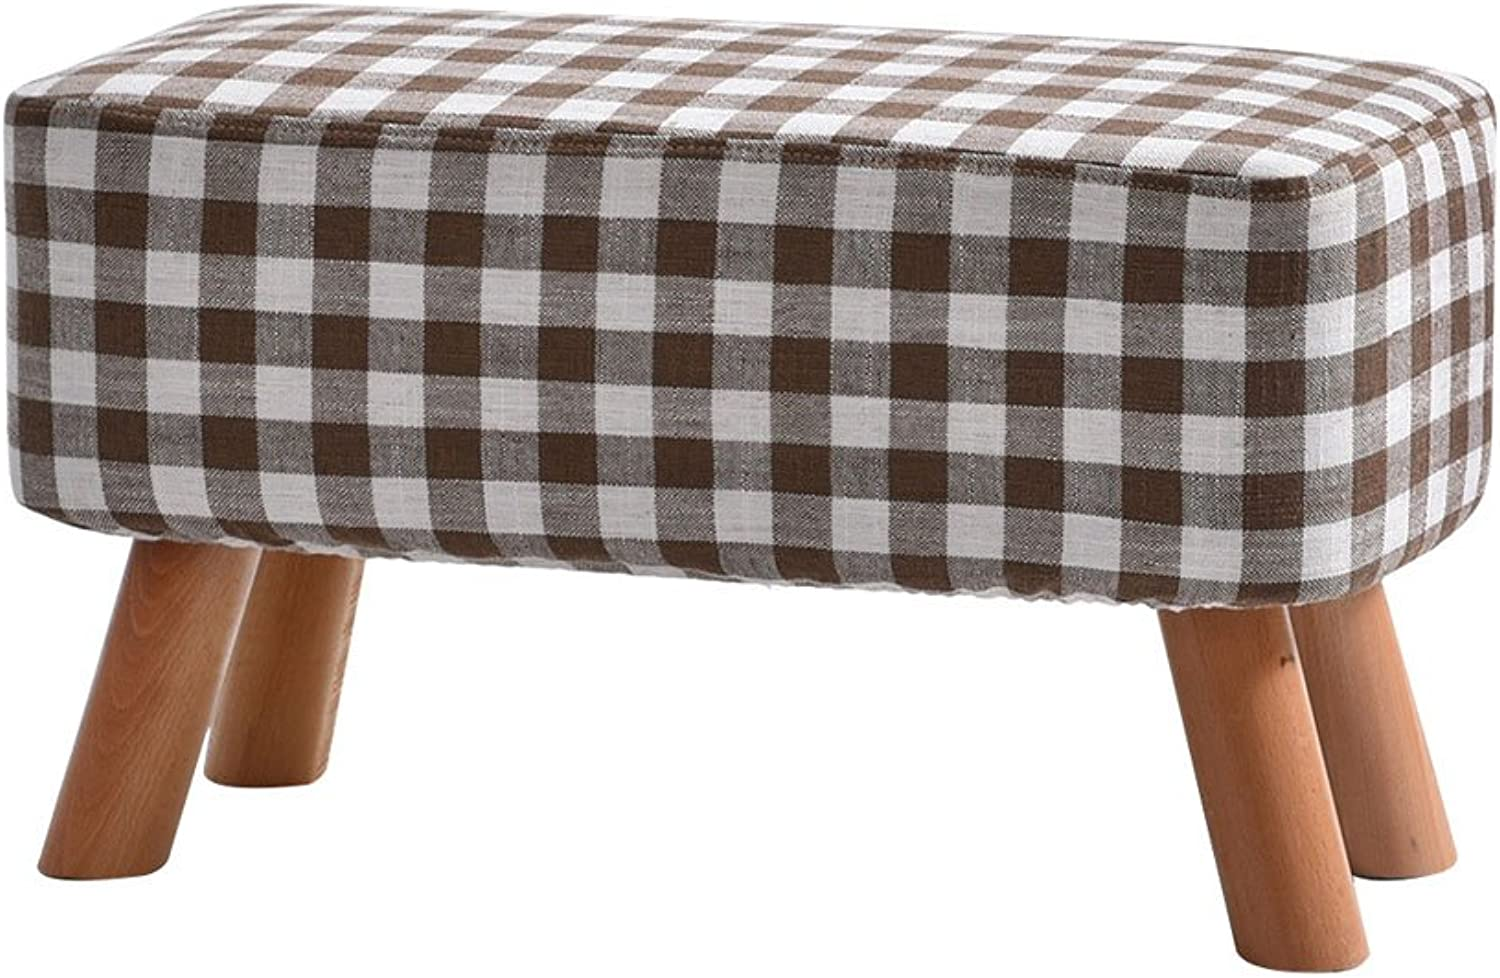 European Chair Solid Wood Bench, Fashion Fabric, shoes Bench, Stool, Stool, Sofa Bench (color   B)